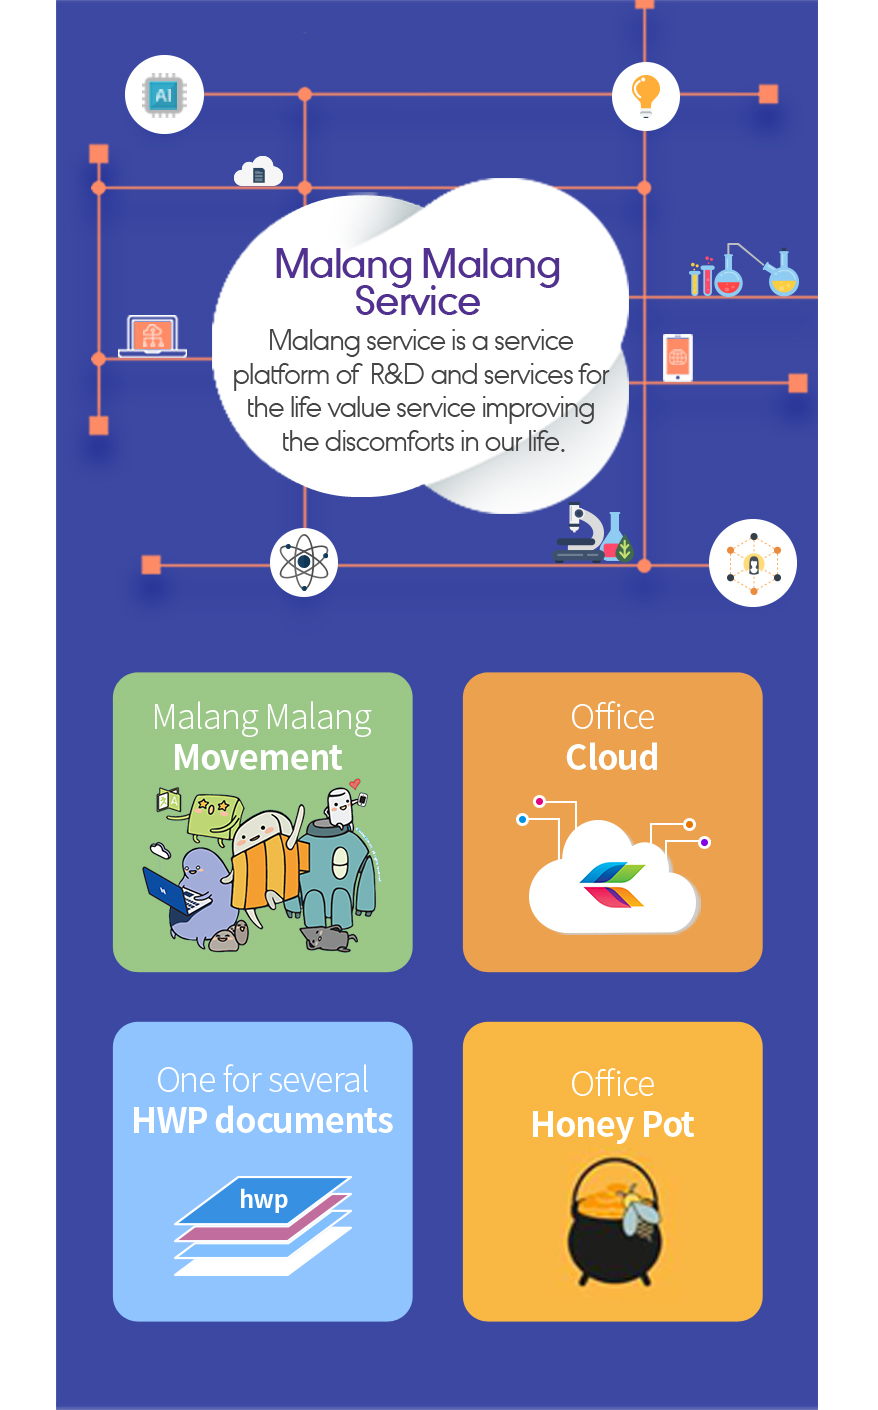 Malang Malang Service - Malang service is a service platform of R&D and services for the life value service improving the discomforts in our life.